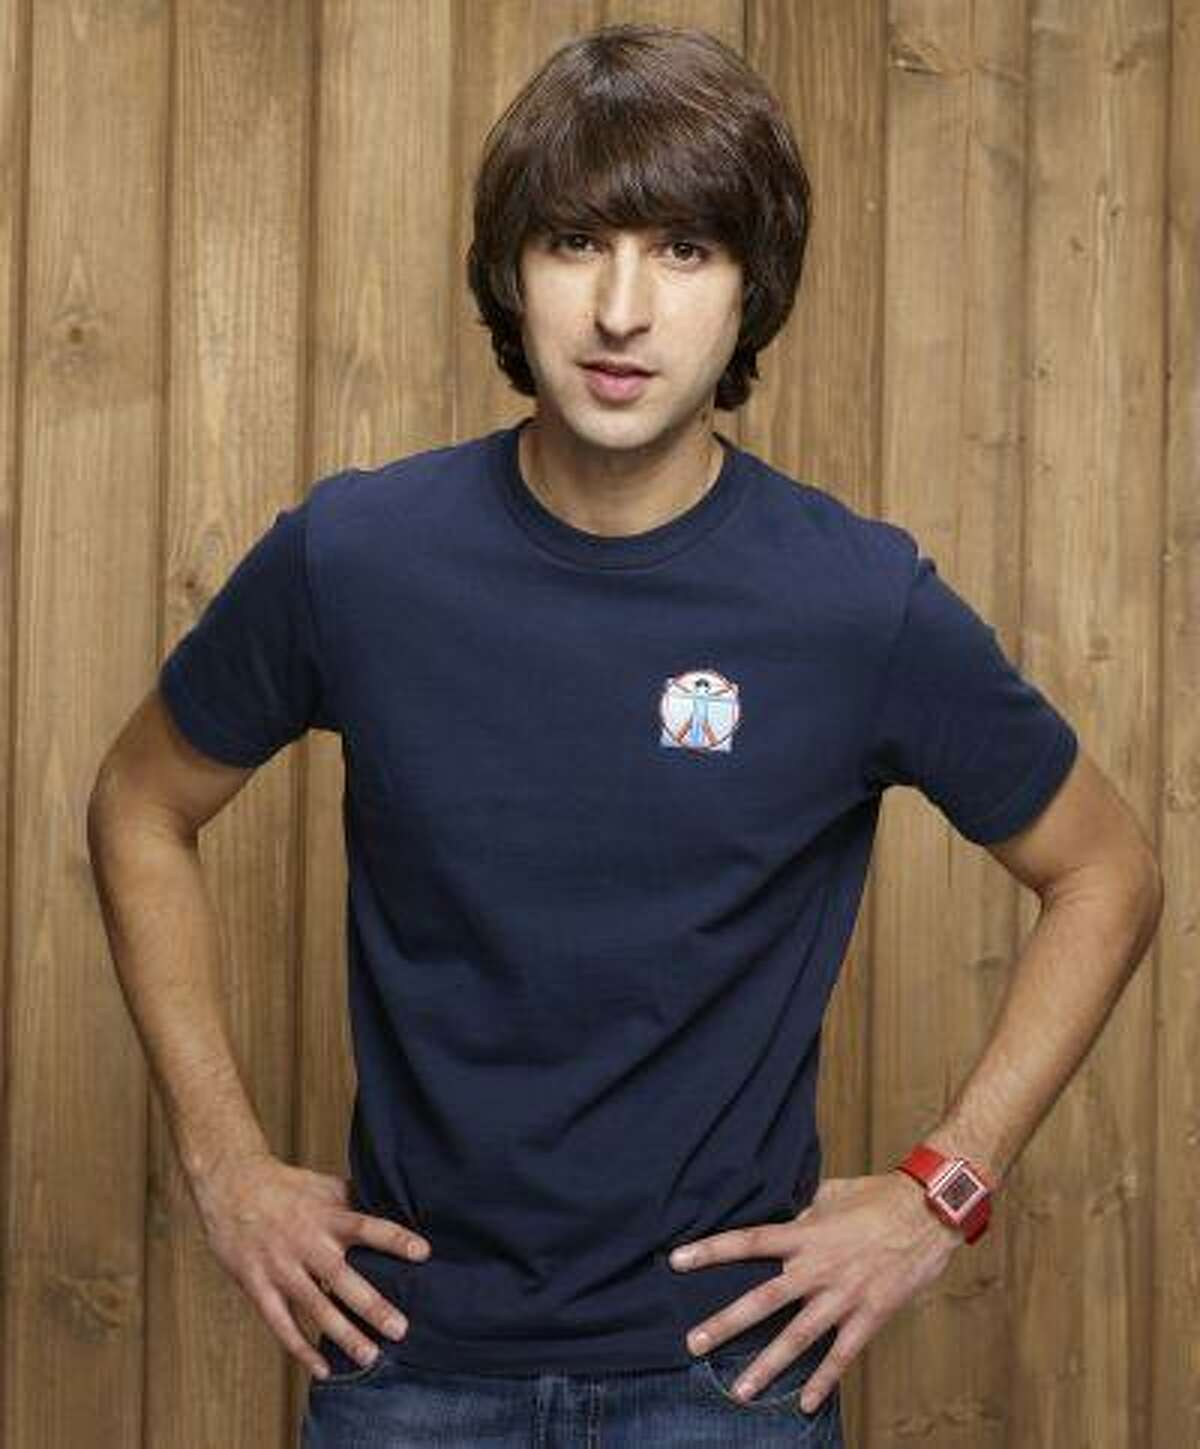 """Demetri Martin started integrating easel drawings into his stand-up and his two-season Comedy Central series, """"Important Things With Demetri Martin."""" His new """"Point Your Face at This"""" is 250-plus pages of Martin's simple line drawings. (Photo credit: Comedy Central)"""